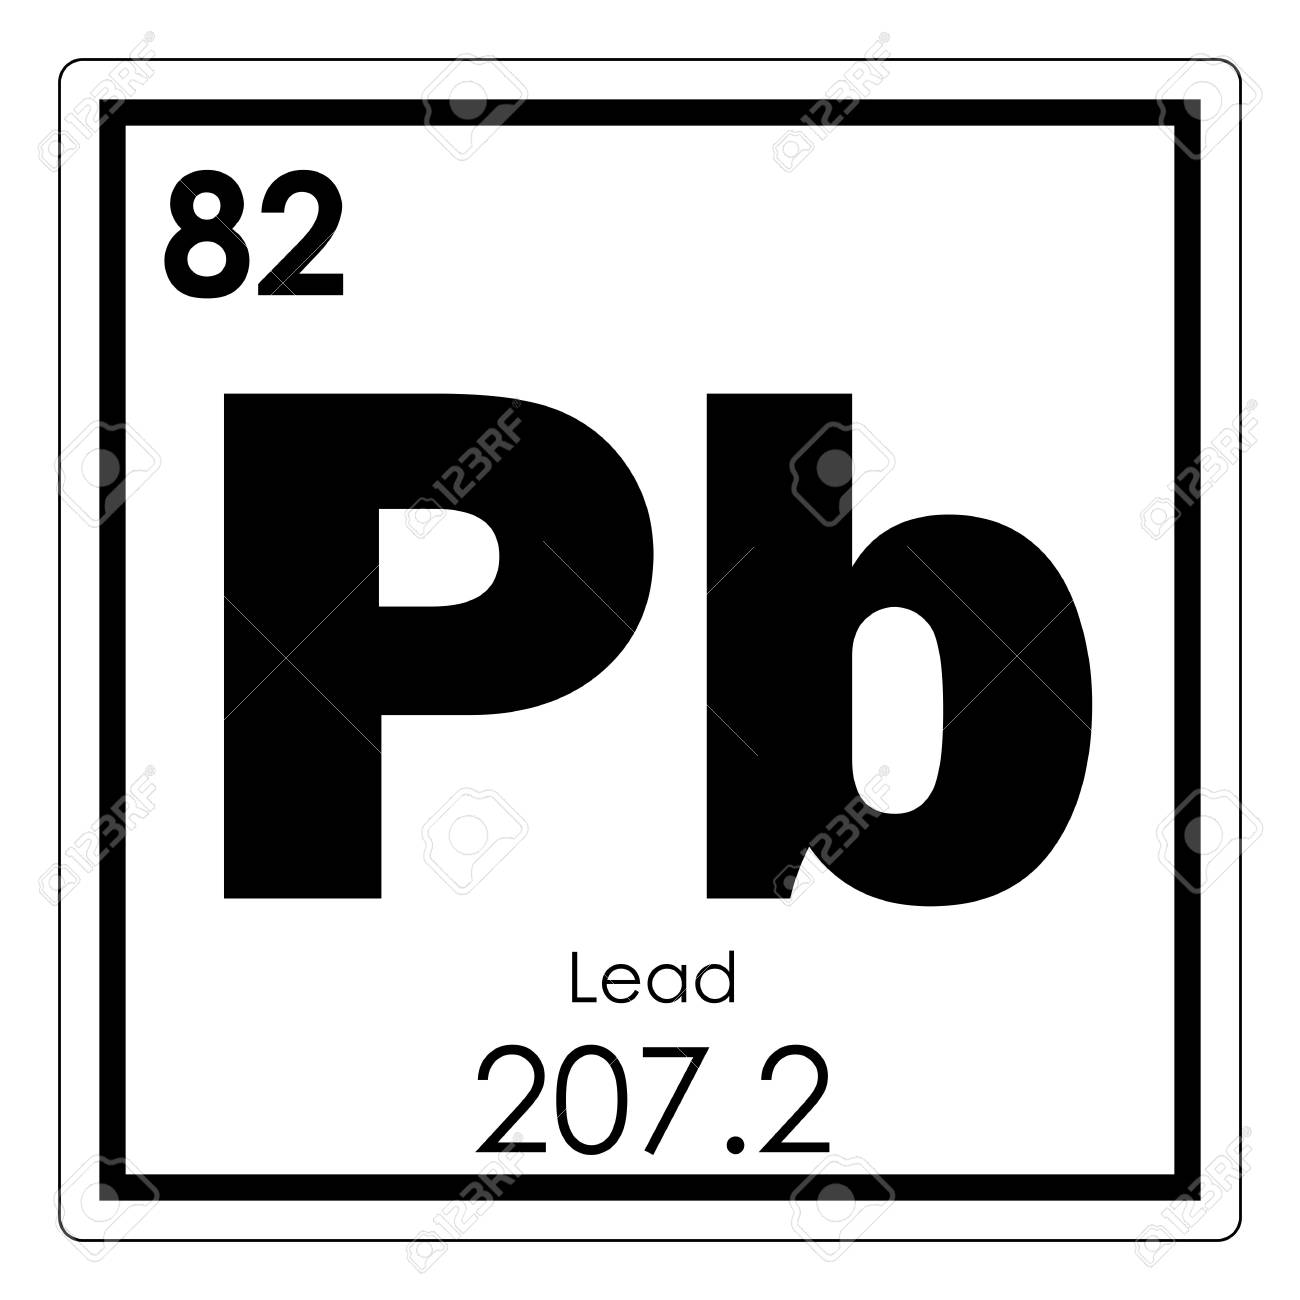 Lead chemical element periodic table science symbol stock photo lead chemical element periodic table science symbol stock photo 93554639 urtaz Choice Image